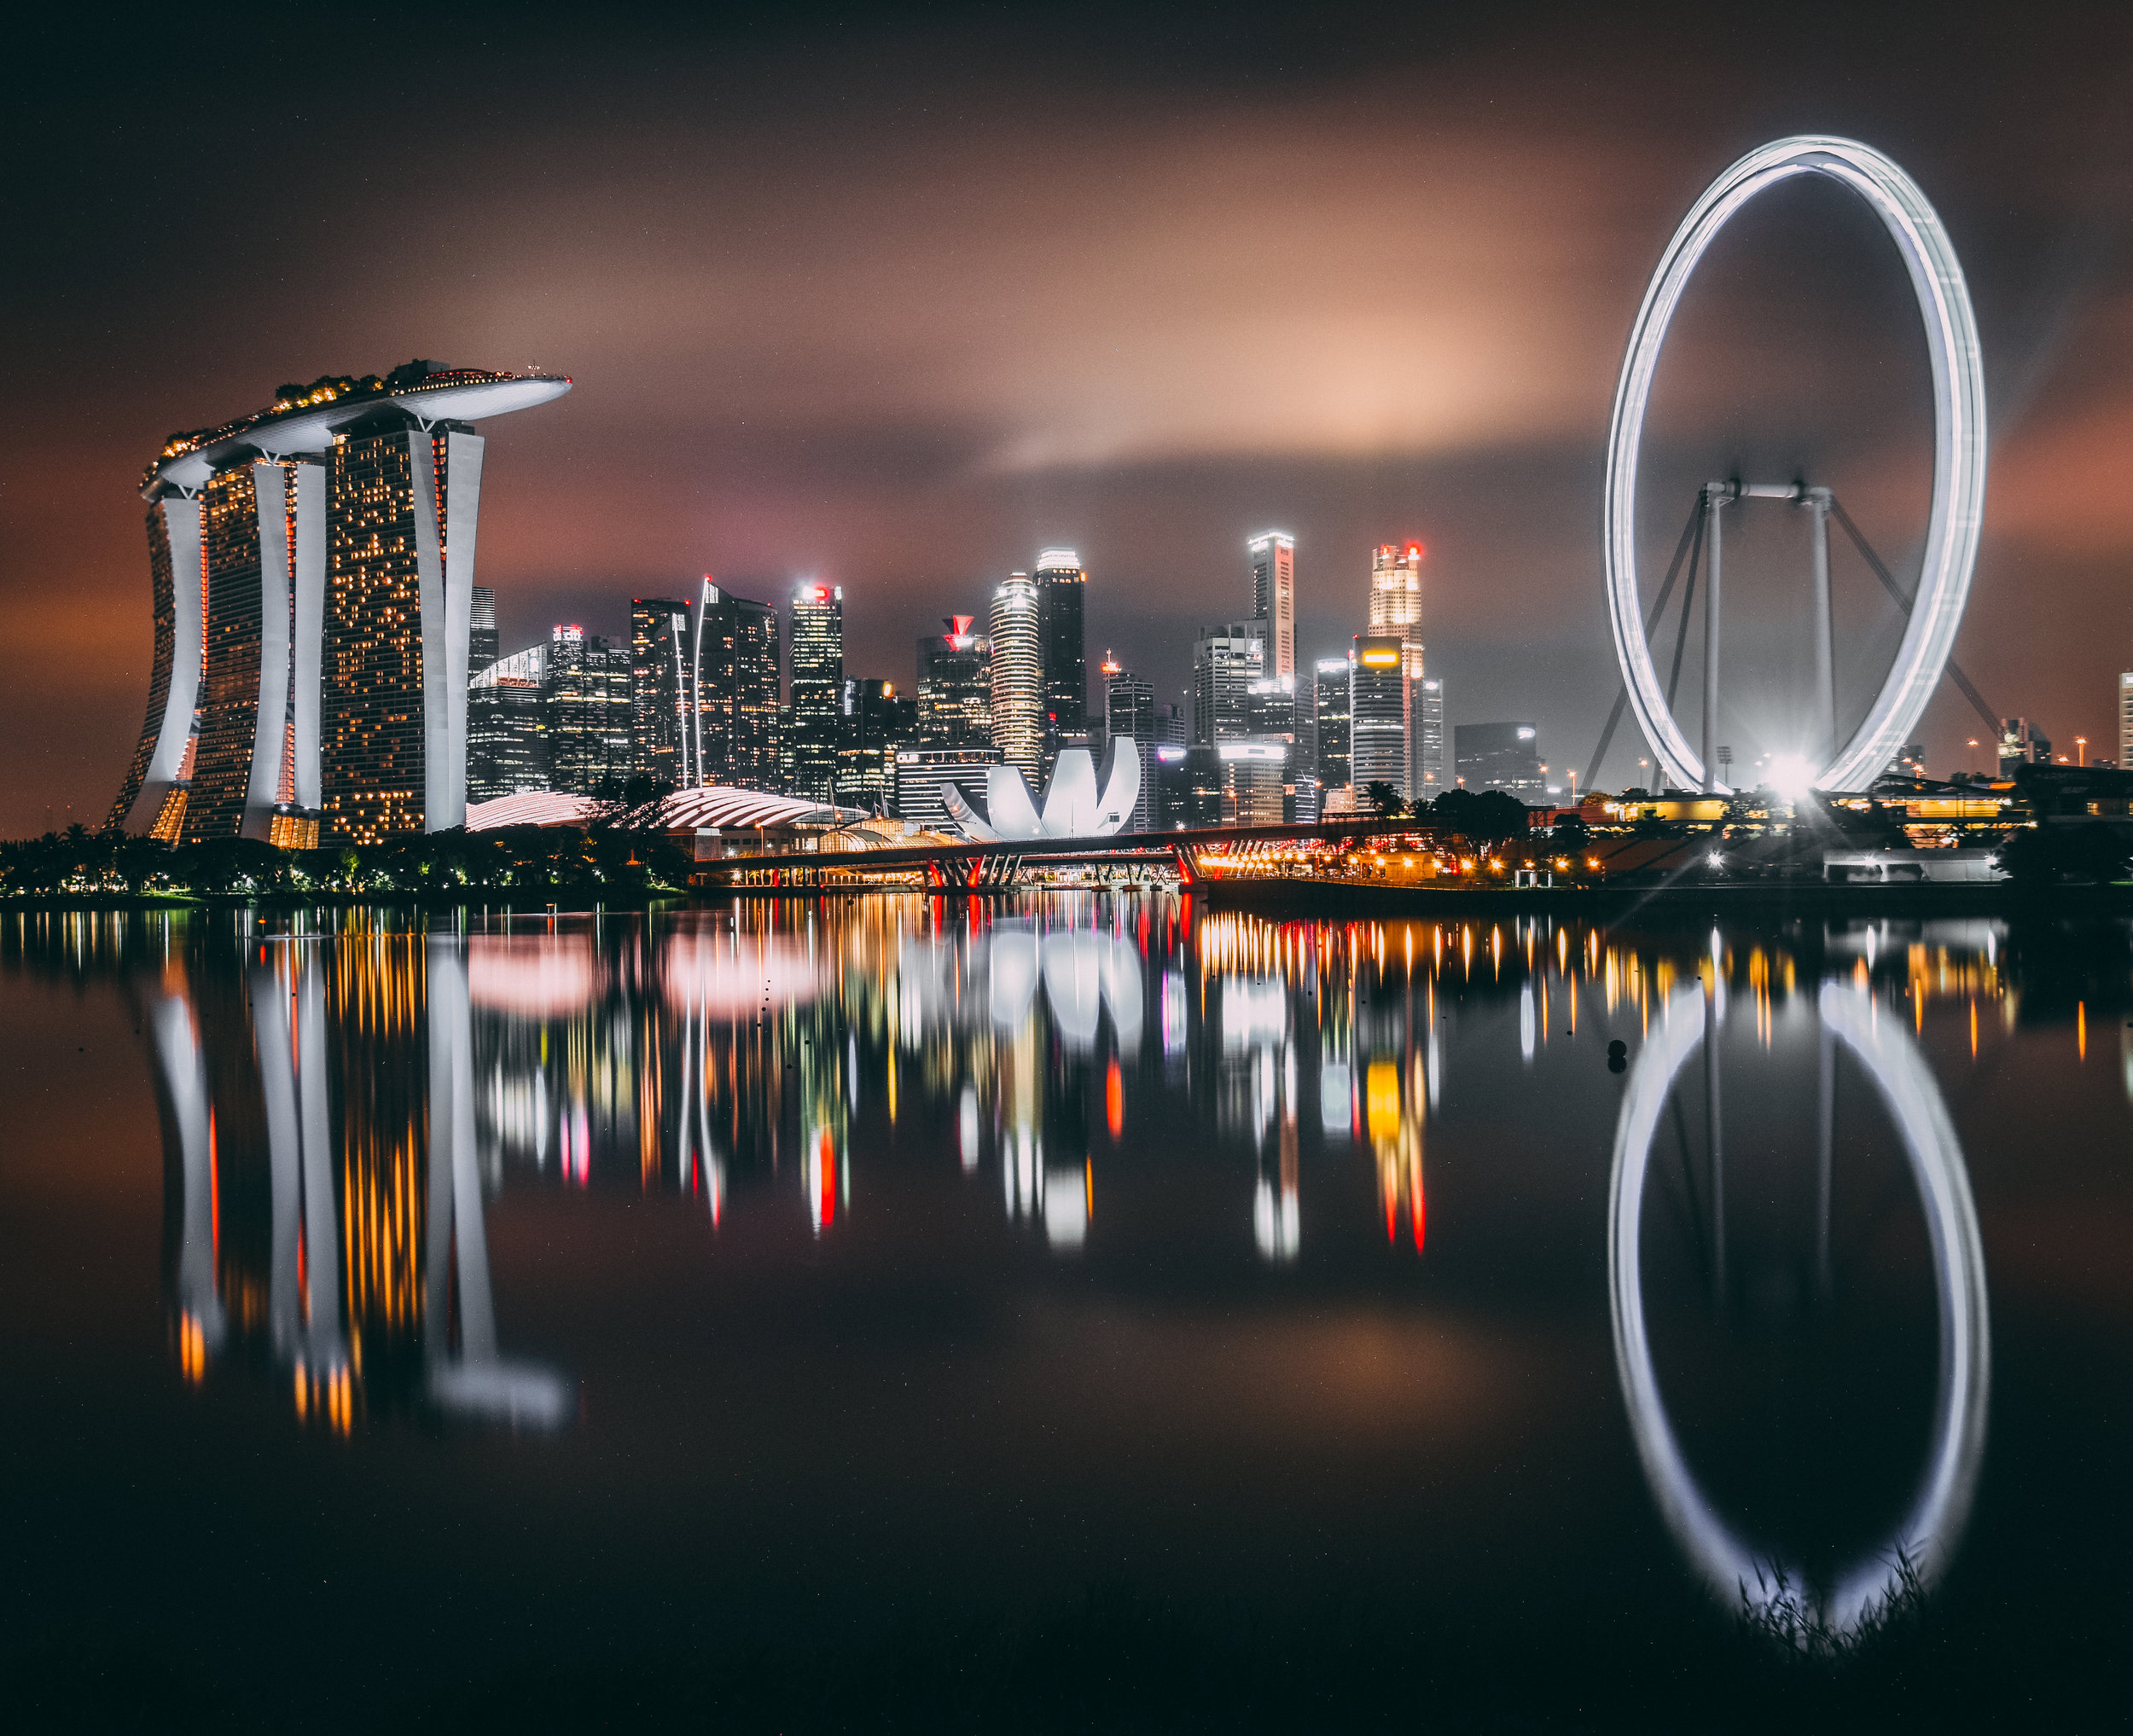 Singapore Airline Deals - Singapore from $1112Phuket from $1149 from Auckland, Wellington or ChristchurchLondon from $1824 (AKL), $1822 (WLG), $1820 (CHC) Paris from $1779 from Auckland, Wellington or ChristchurchEnquiries & bookings with Air TicketsSales until 17 Sep 2019